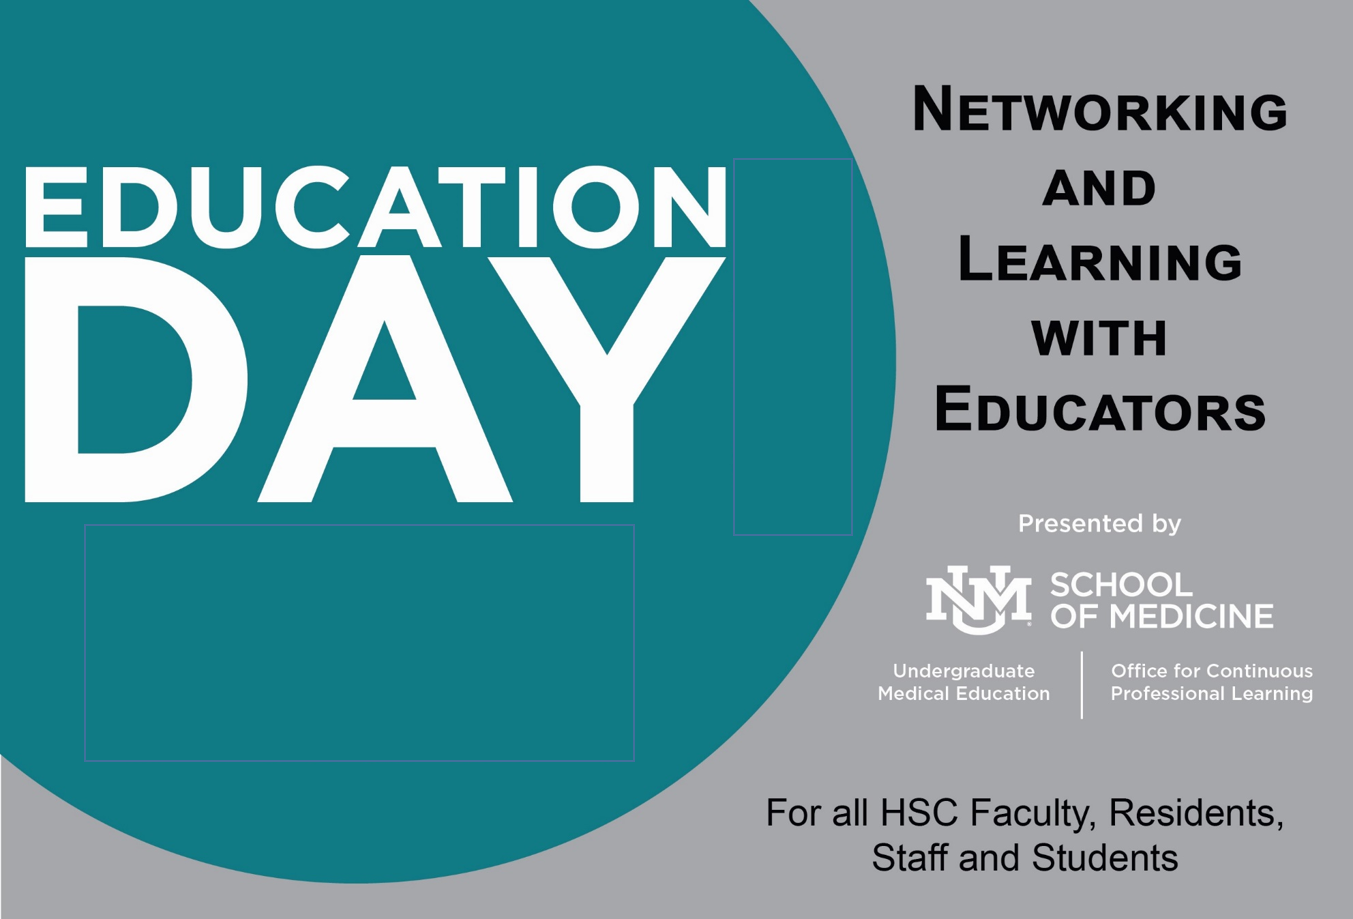 HSC Education Day